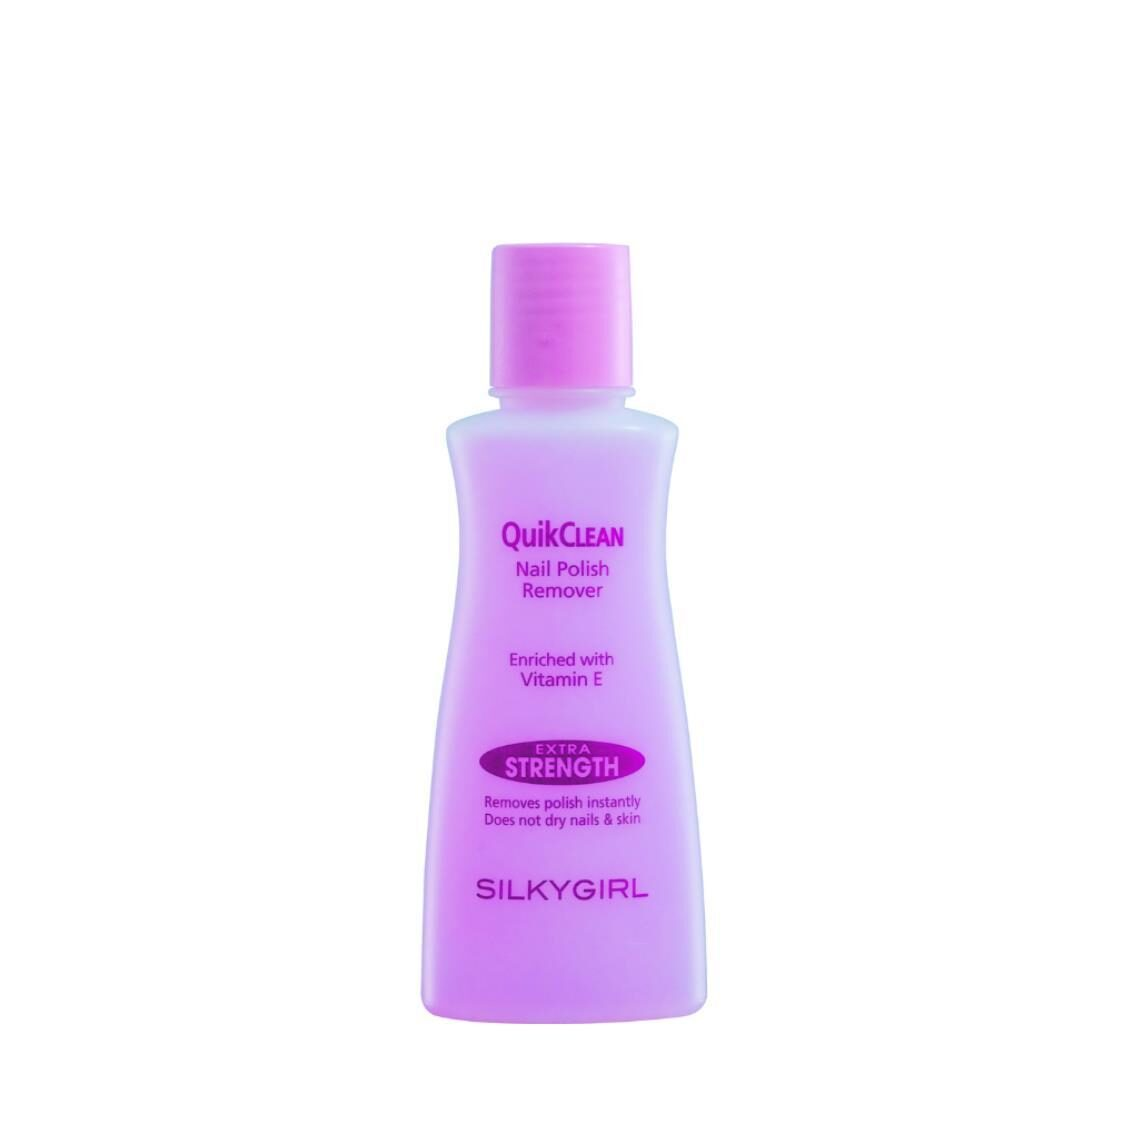 Quikclean Nail Polish Remover 02 Extra Strength